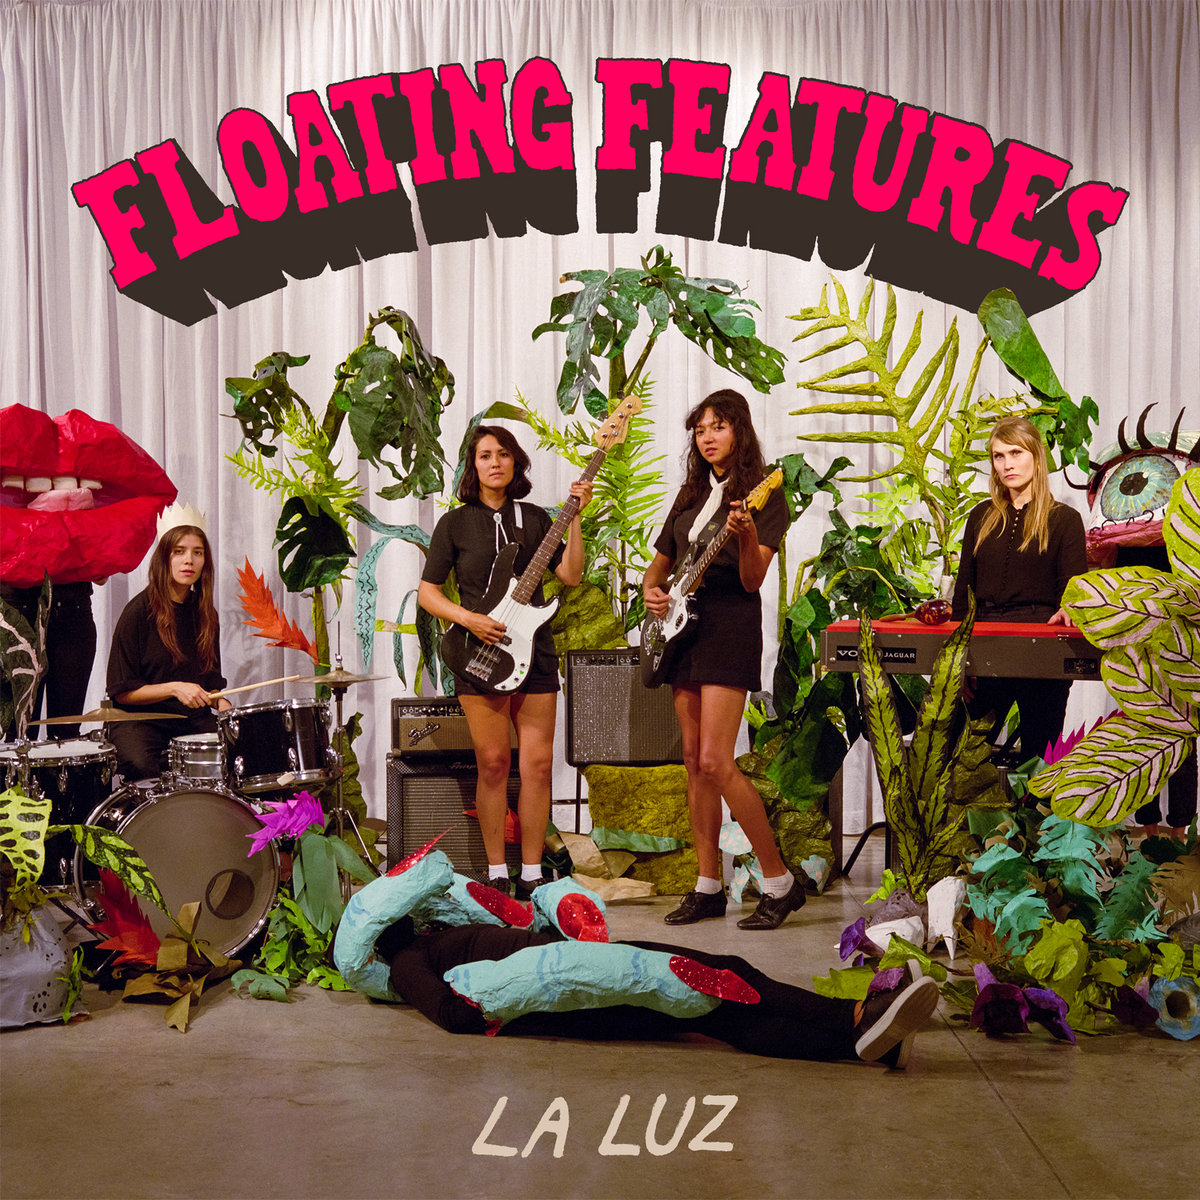 La Luz - Floating Features  Release Date: 5/11/18 Devices Used:  Disaster Transport SR